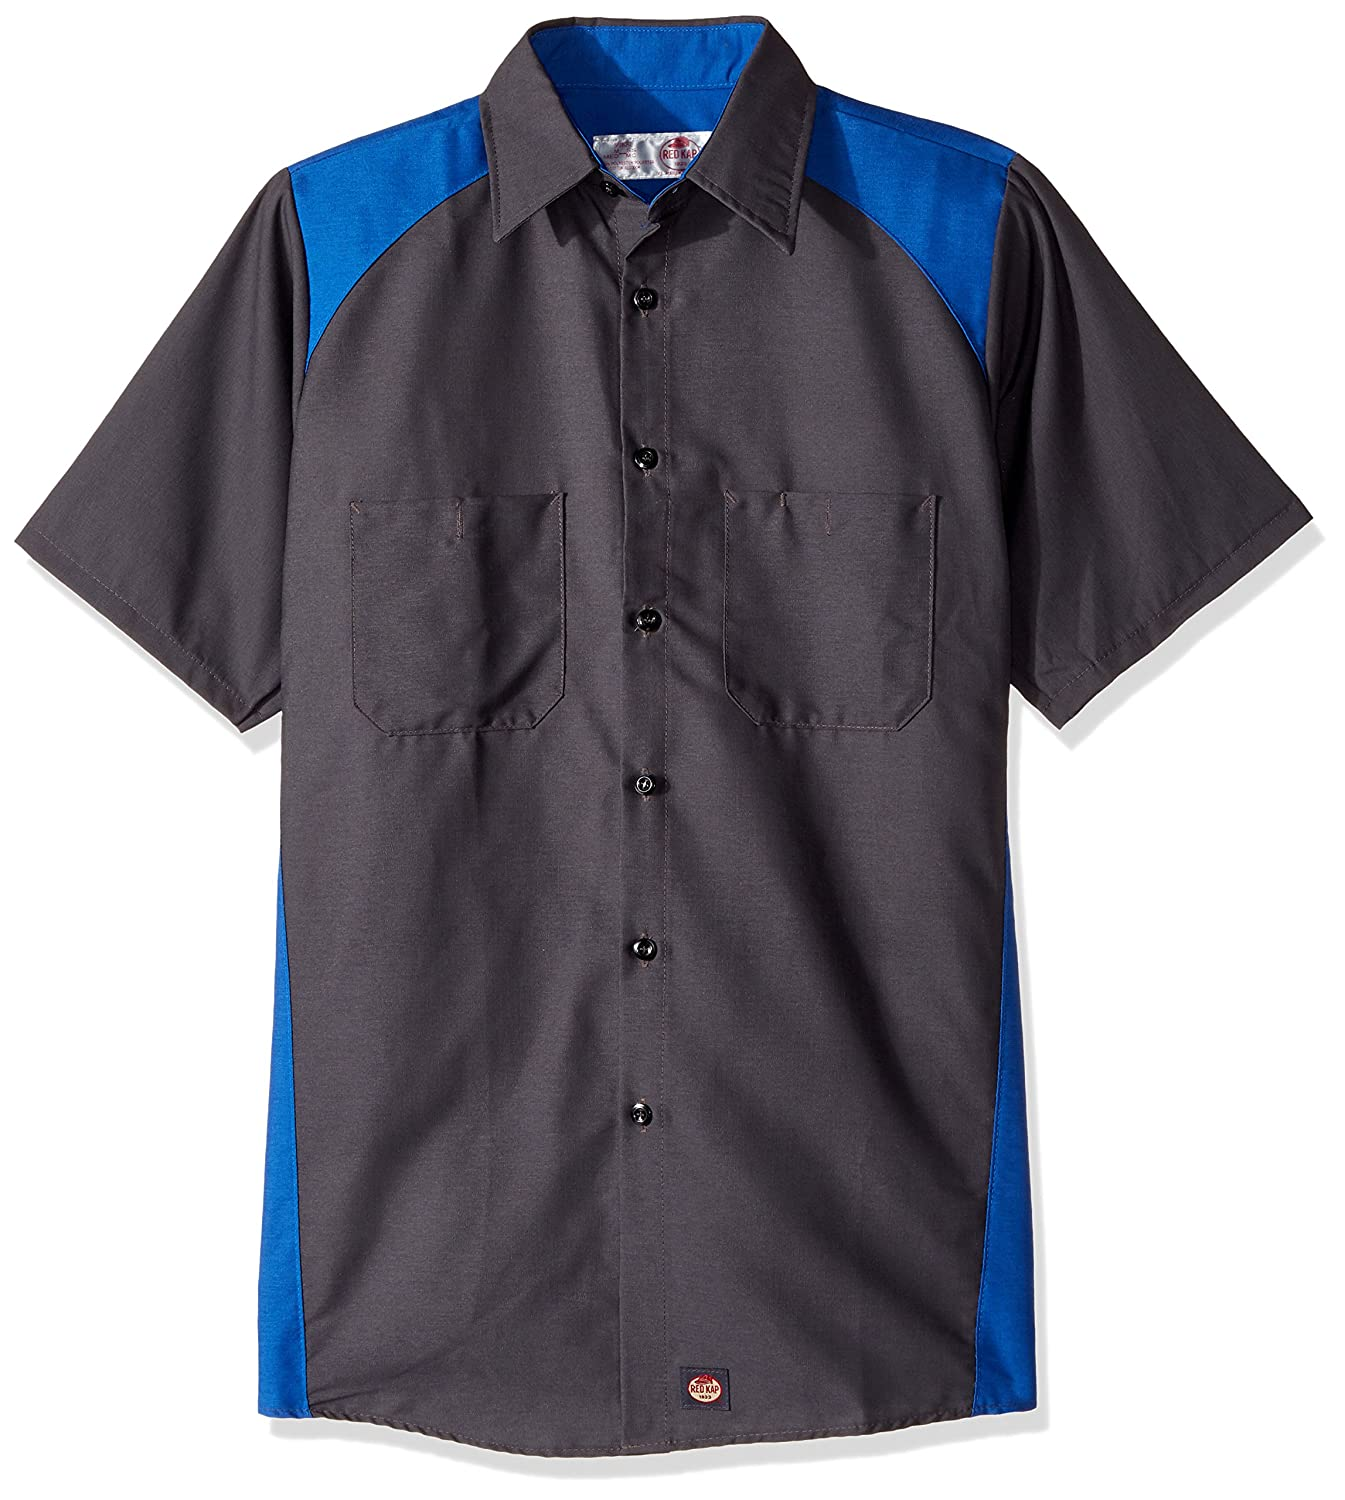 Red Kap SHIRT メンズ B01MQWXKZA X-Large|Charcoal/Royal Blue Charcoal/Royal Blue X-Large